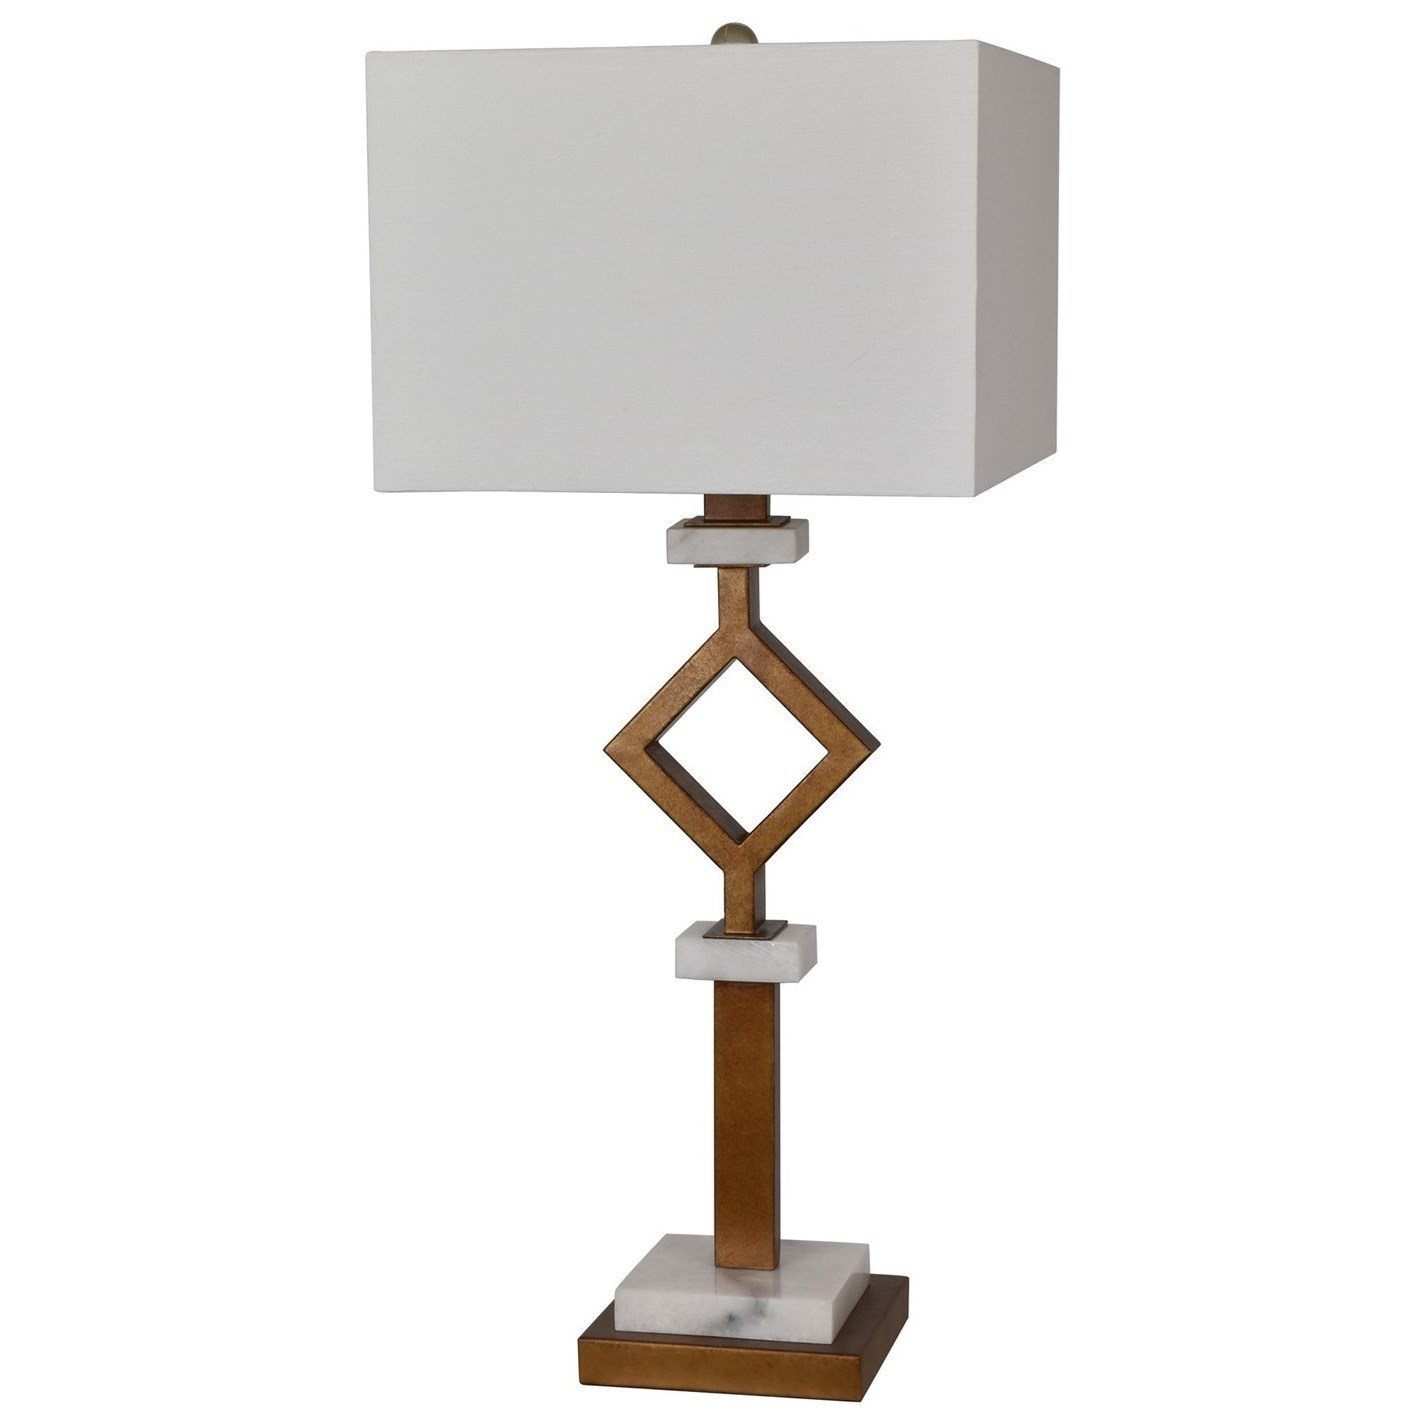 Crestview Collection Lighting Marseilles Table Lamp - Item Number: CVAER925